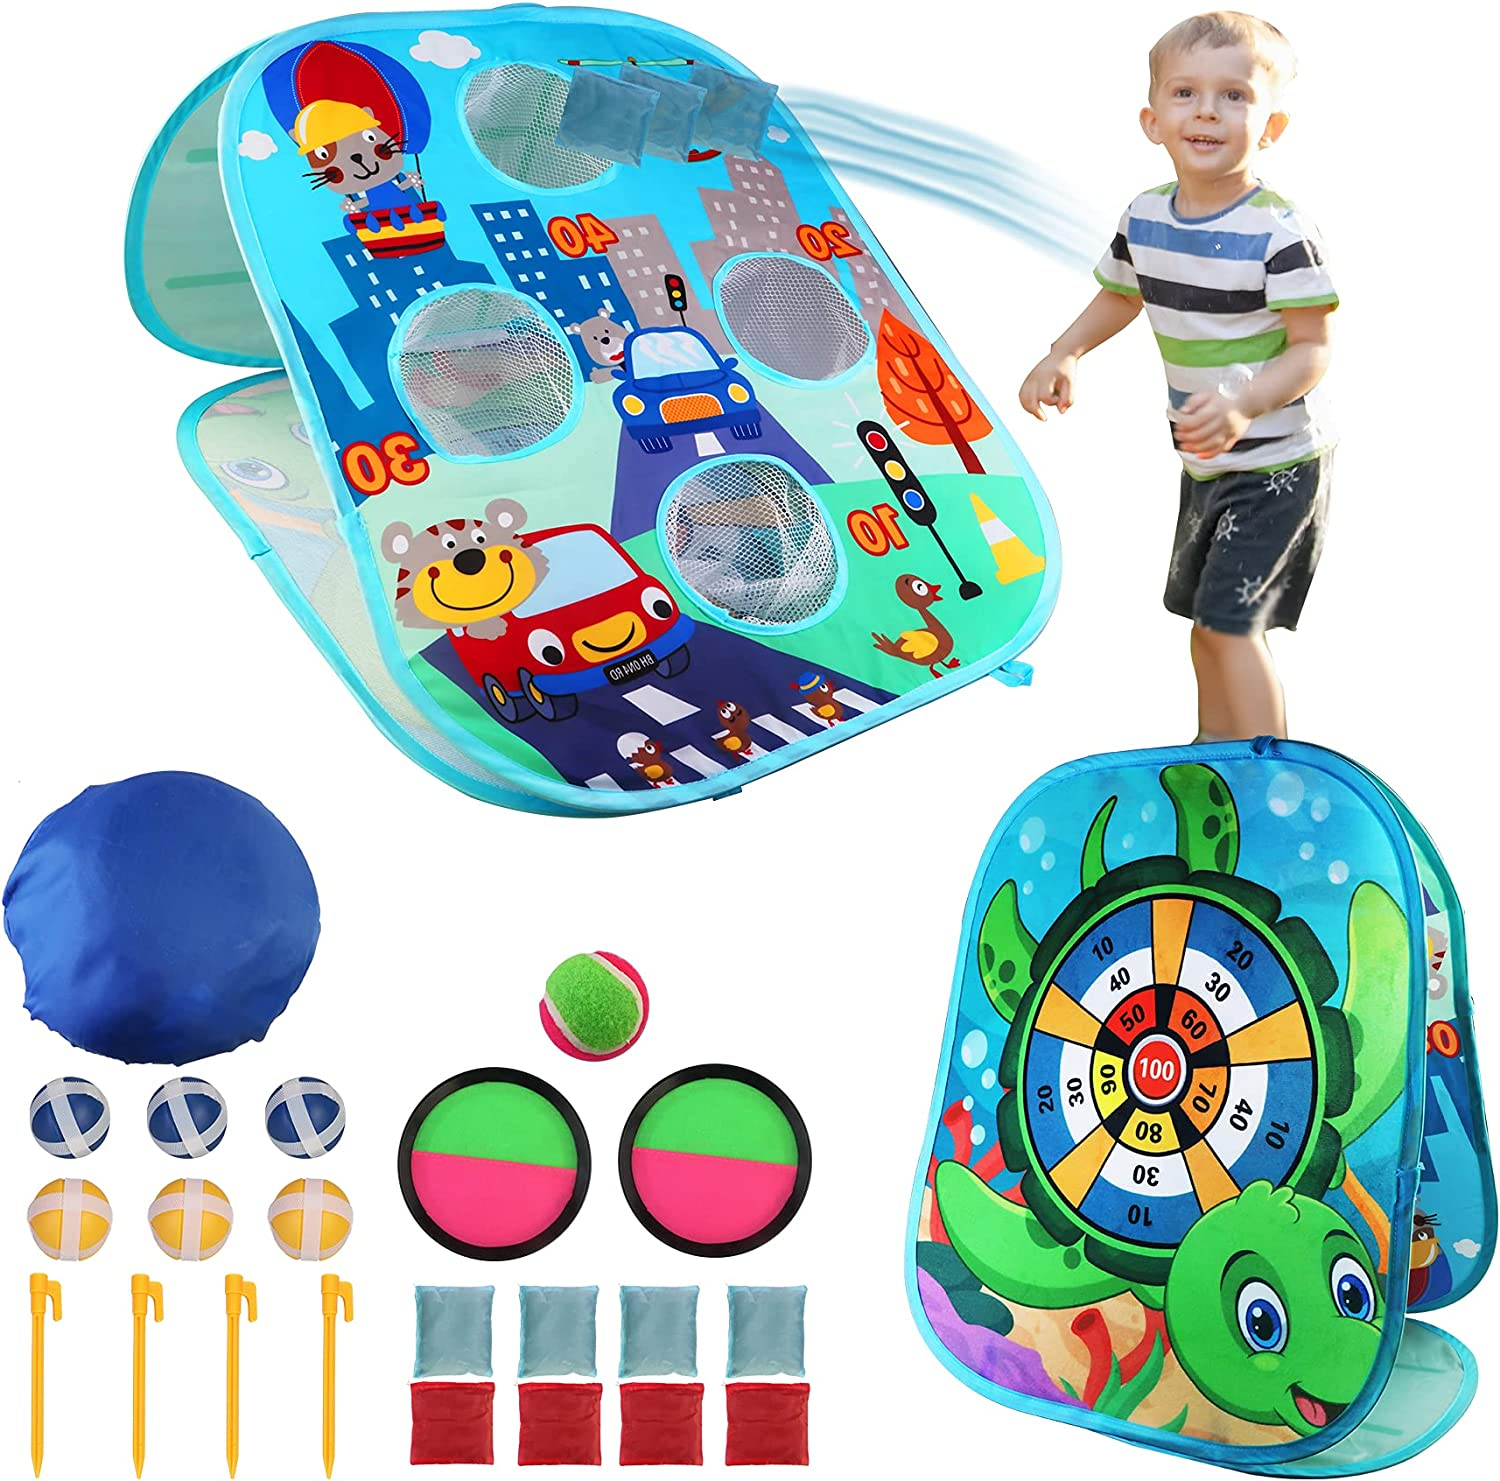 Liktoys Collapsible Portable Discount is also underway Bean Bag Catch Credence for Kids Game Toss